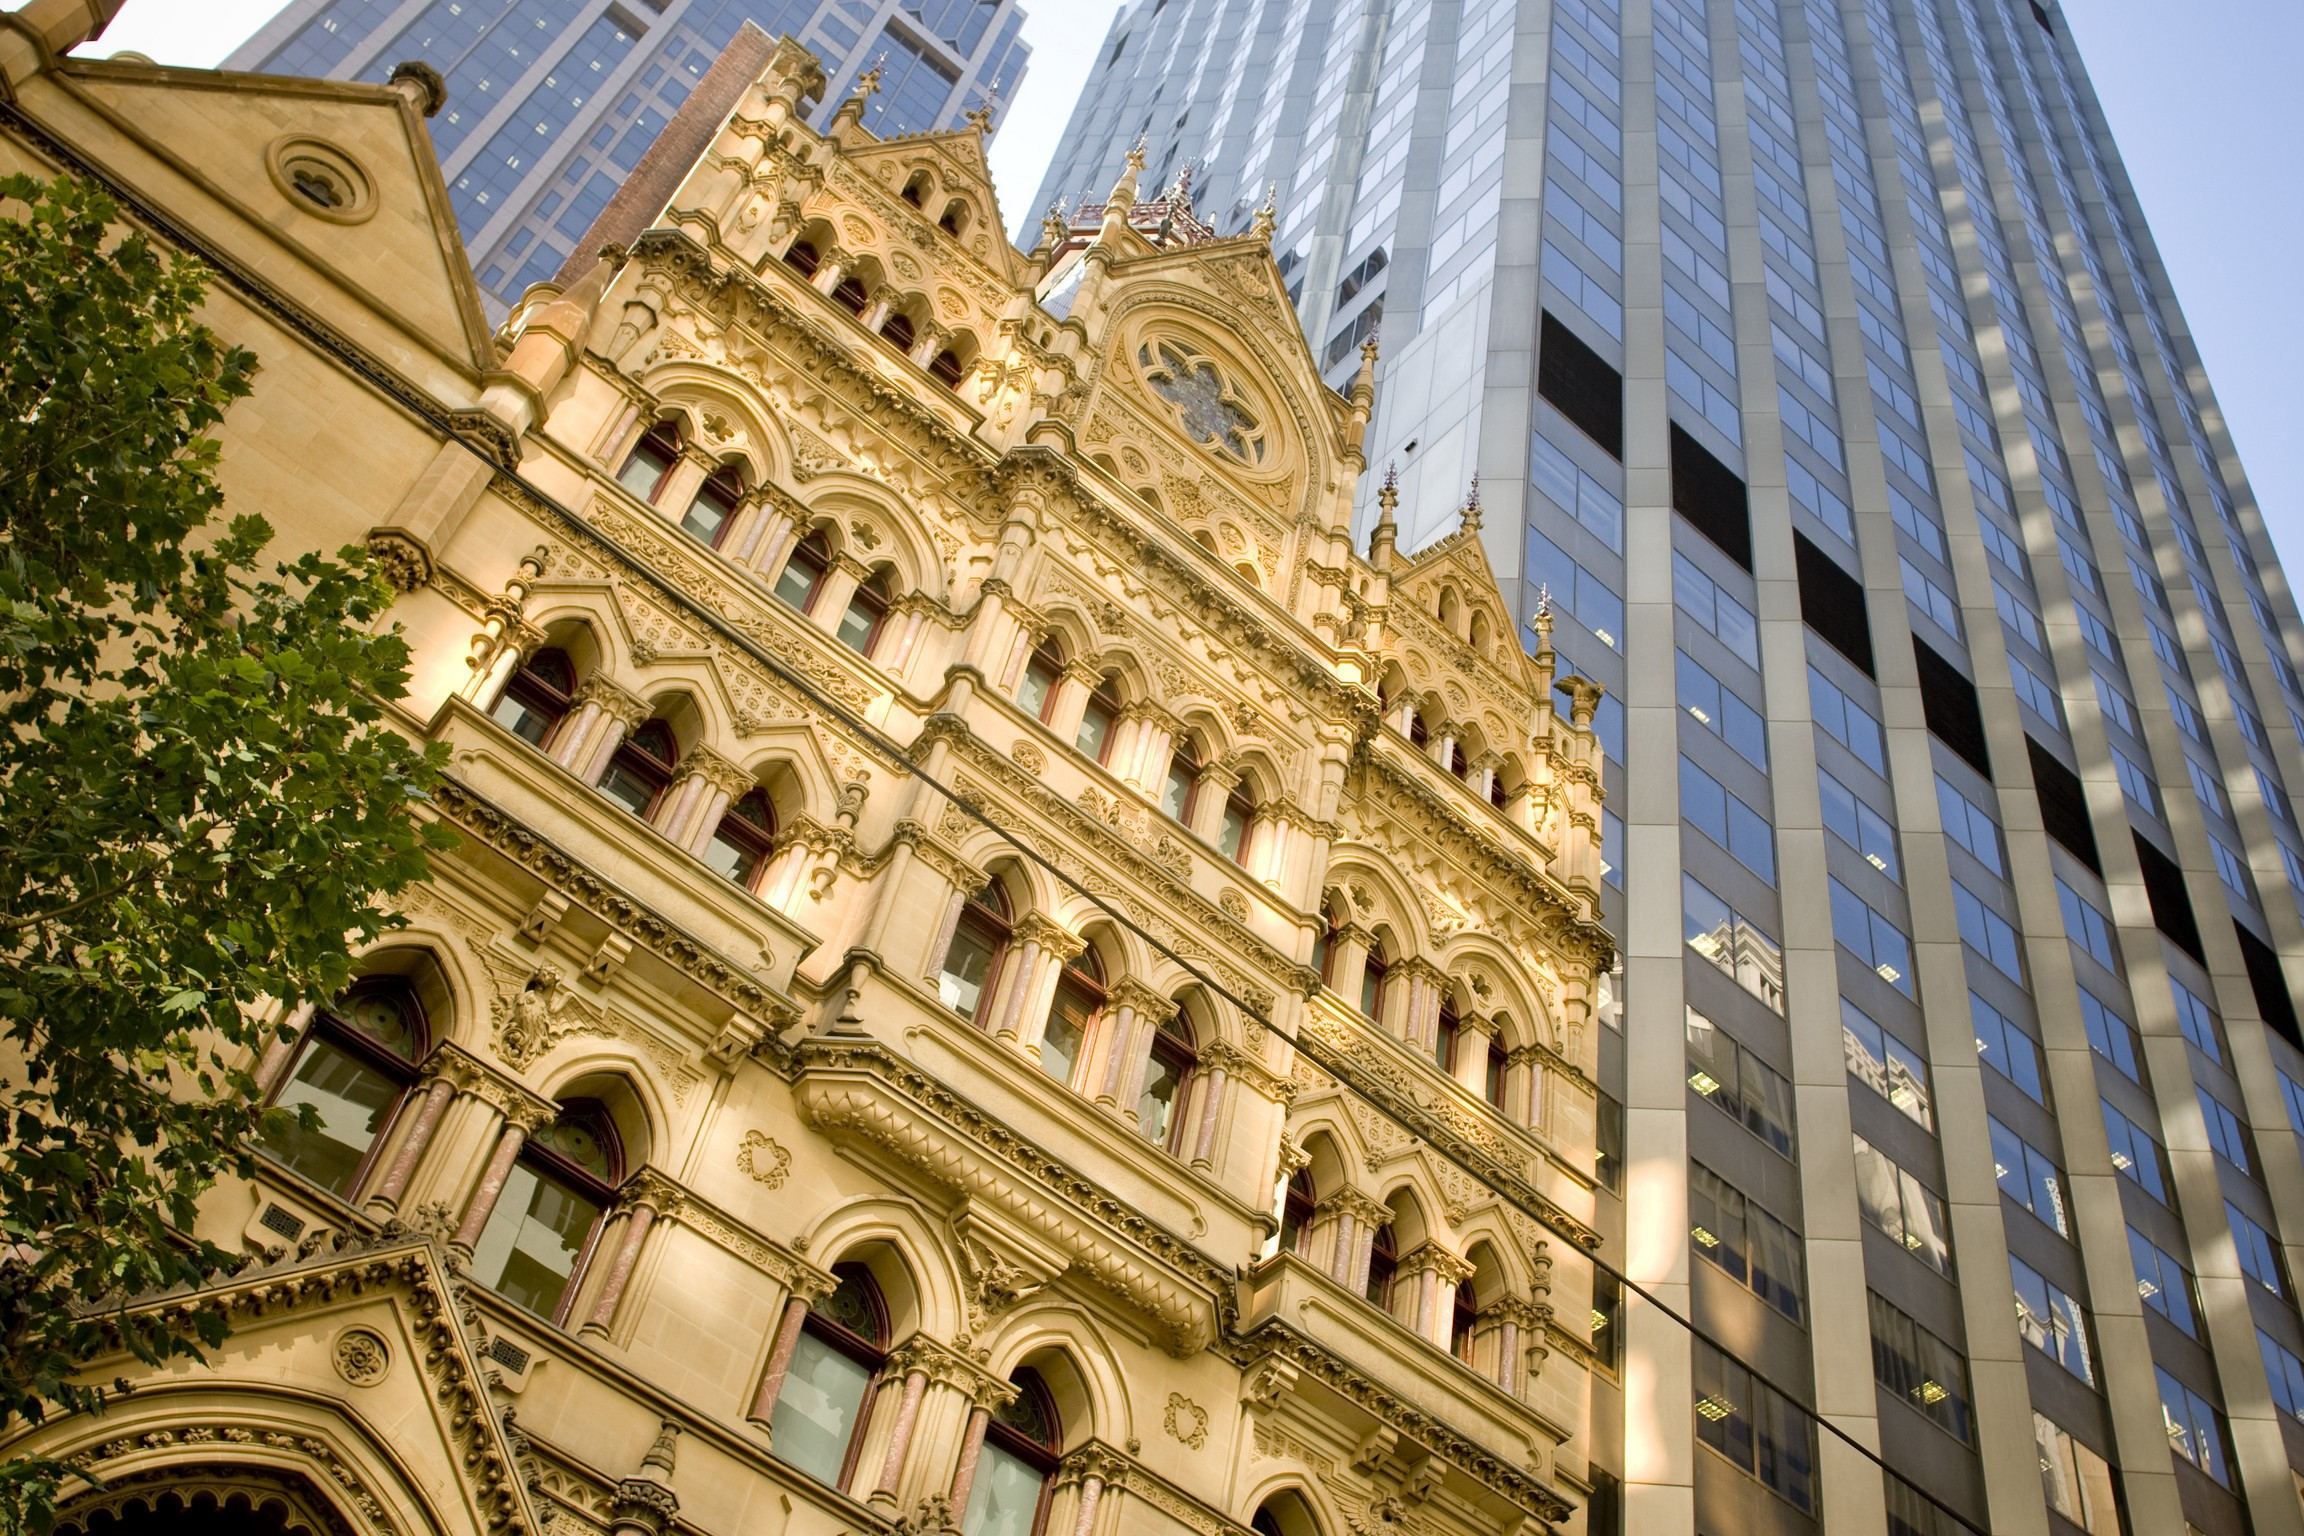 Gothic Bank-Melbourne History Tour-Melbourne Walking Tour-Gold Fever